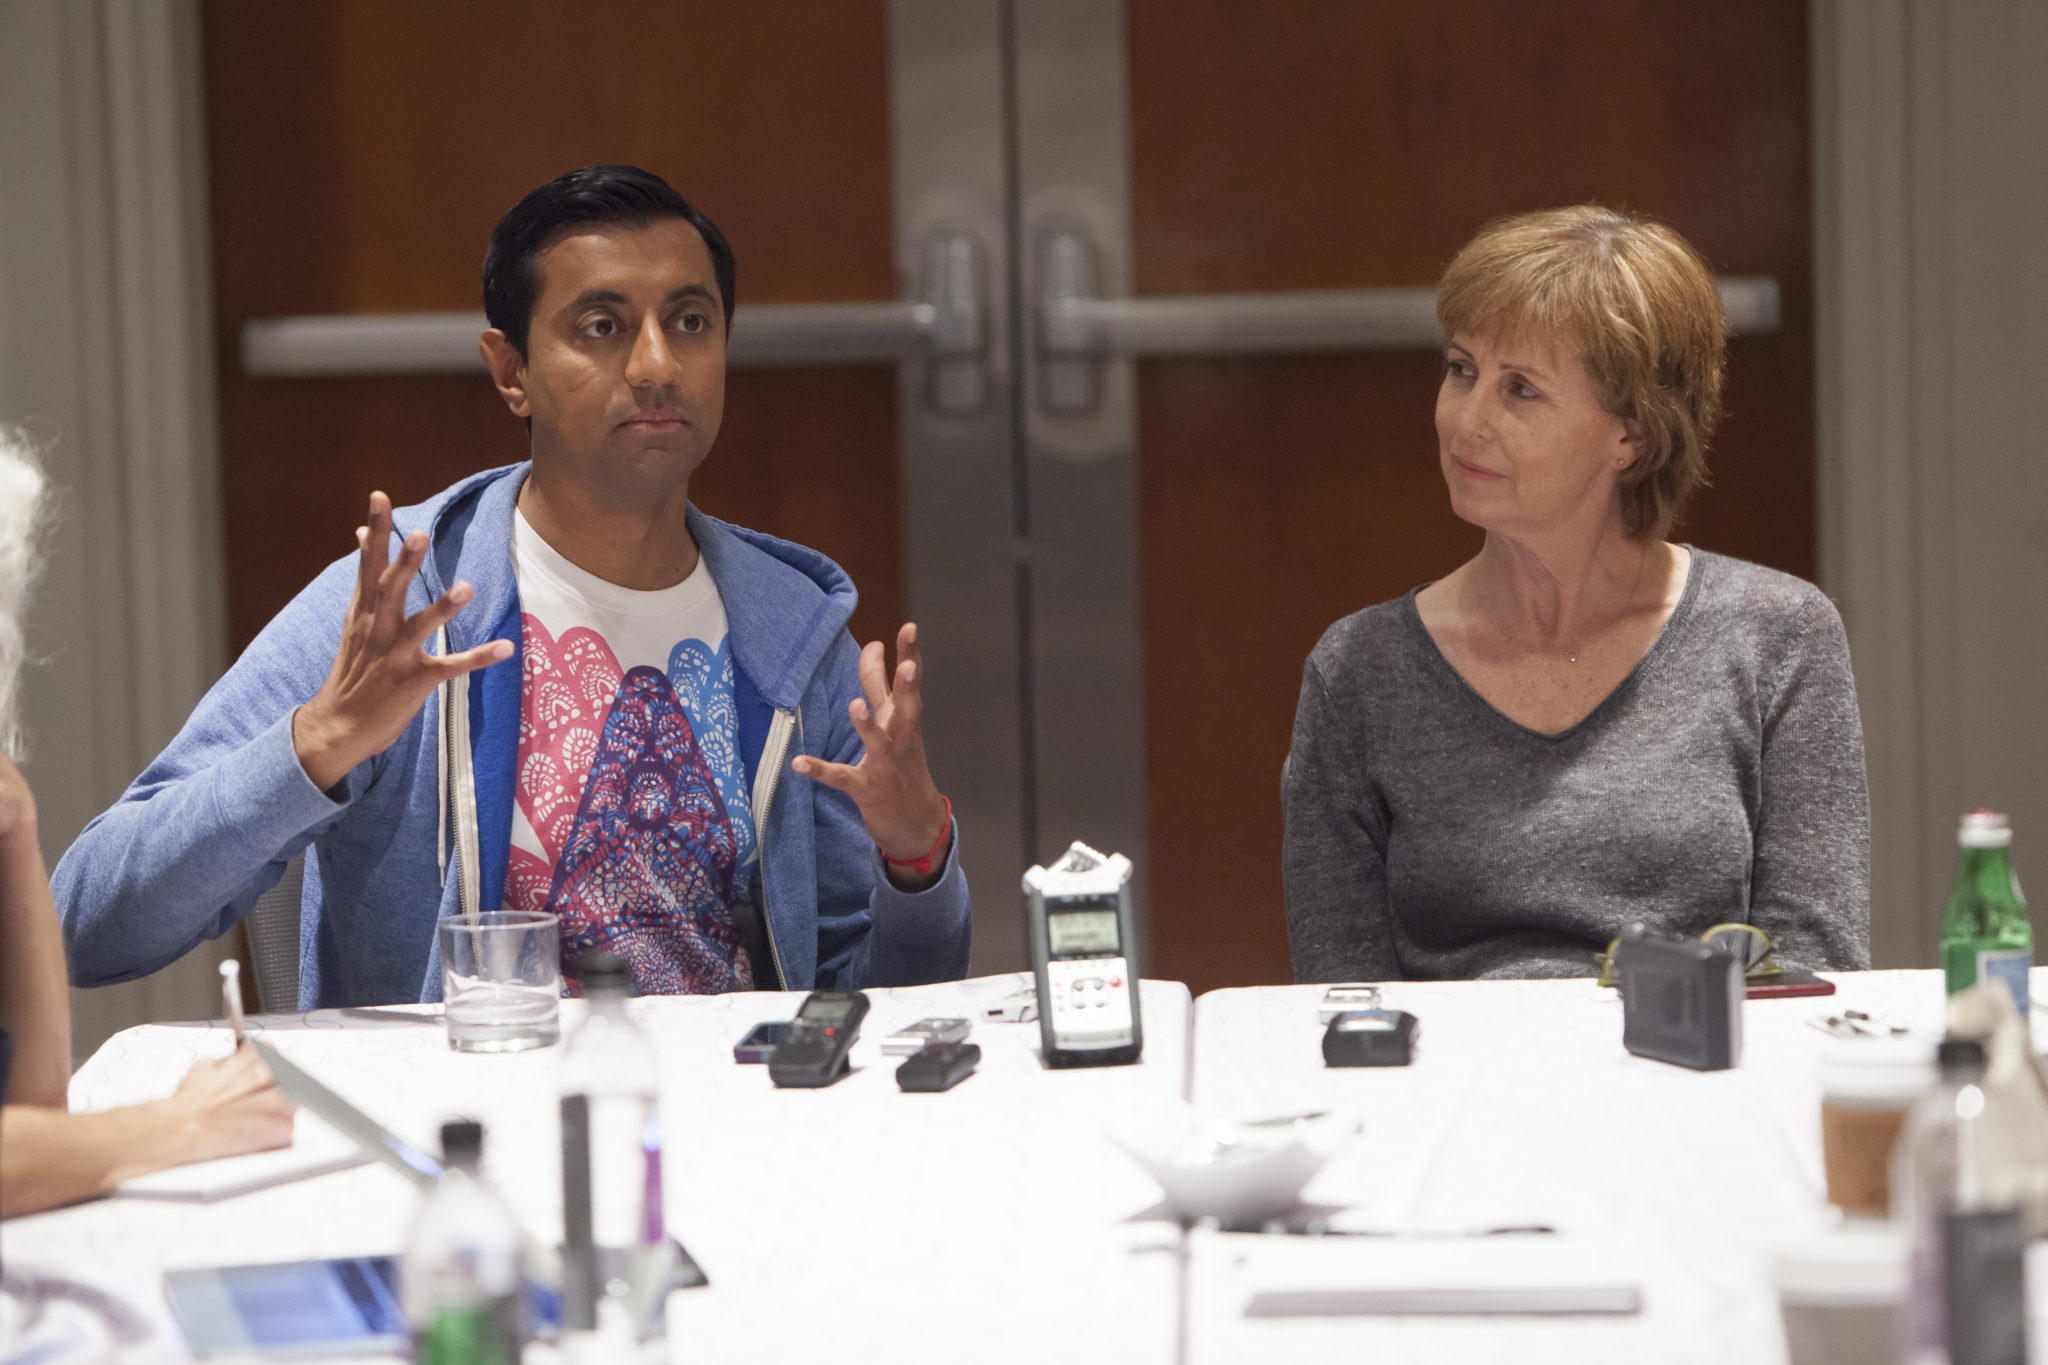 Interview with Disney•Pixar's Sanjay's Super Team Director Sanjay Patel and Producer Nicole Grindle